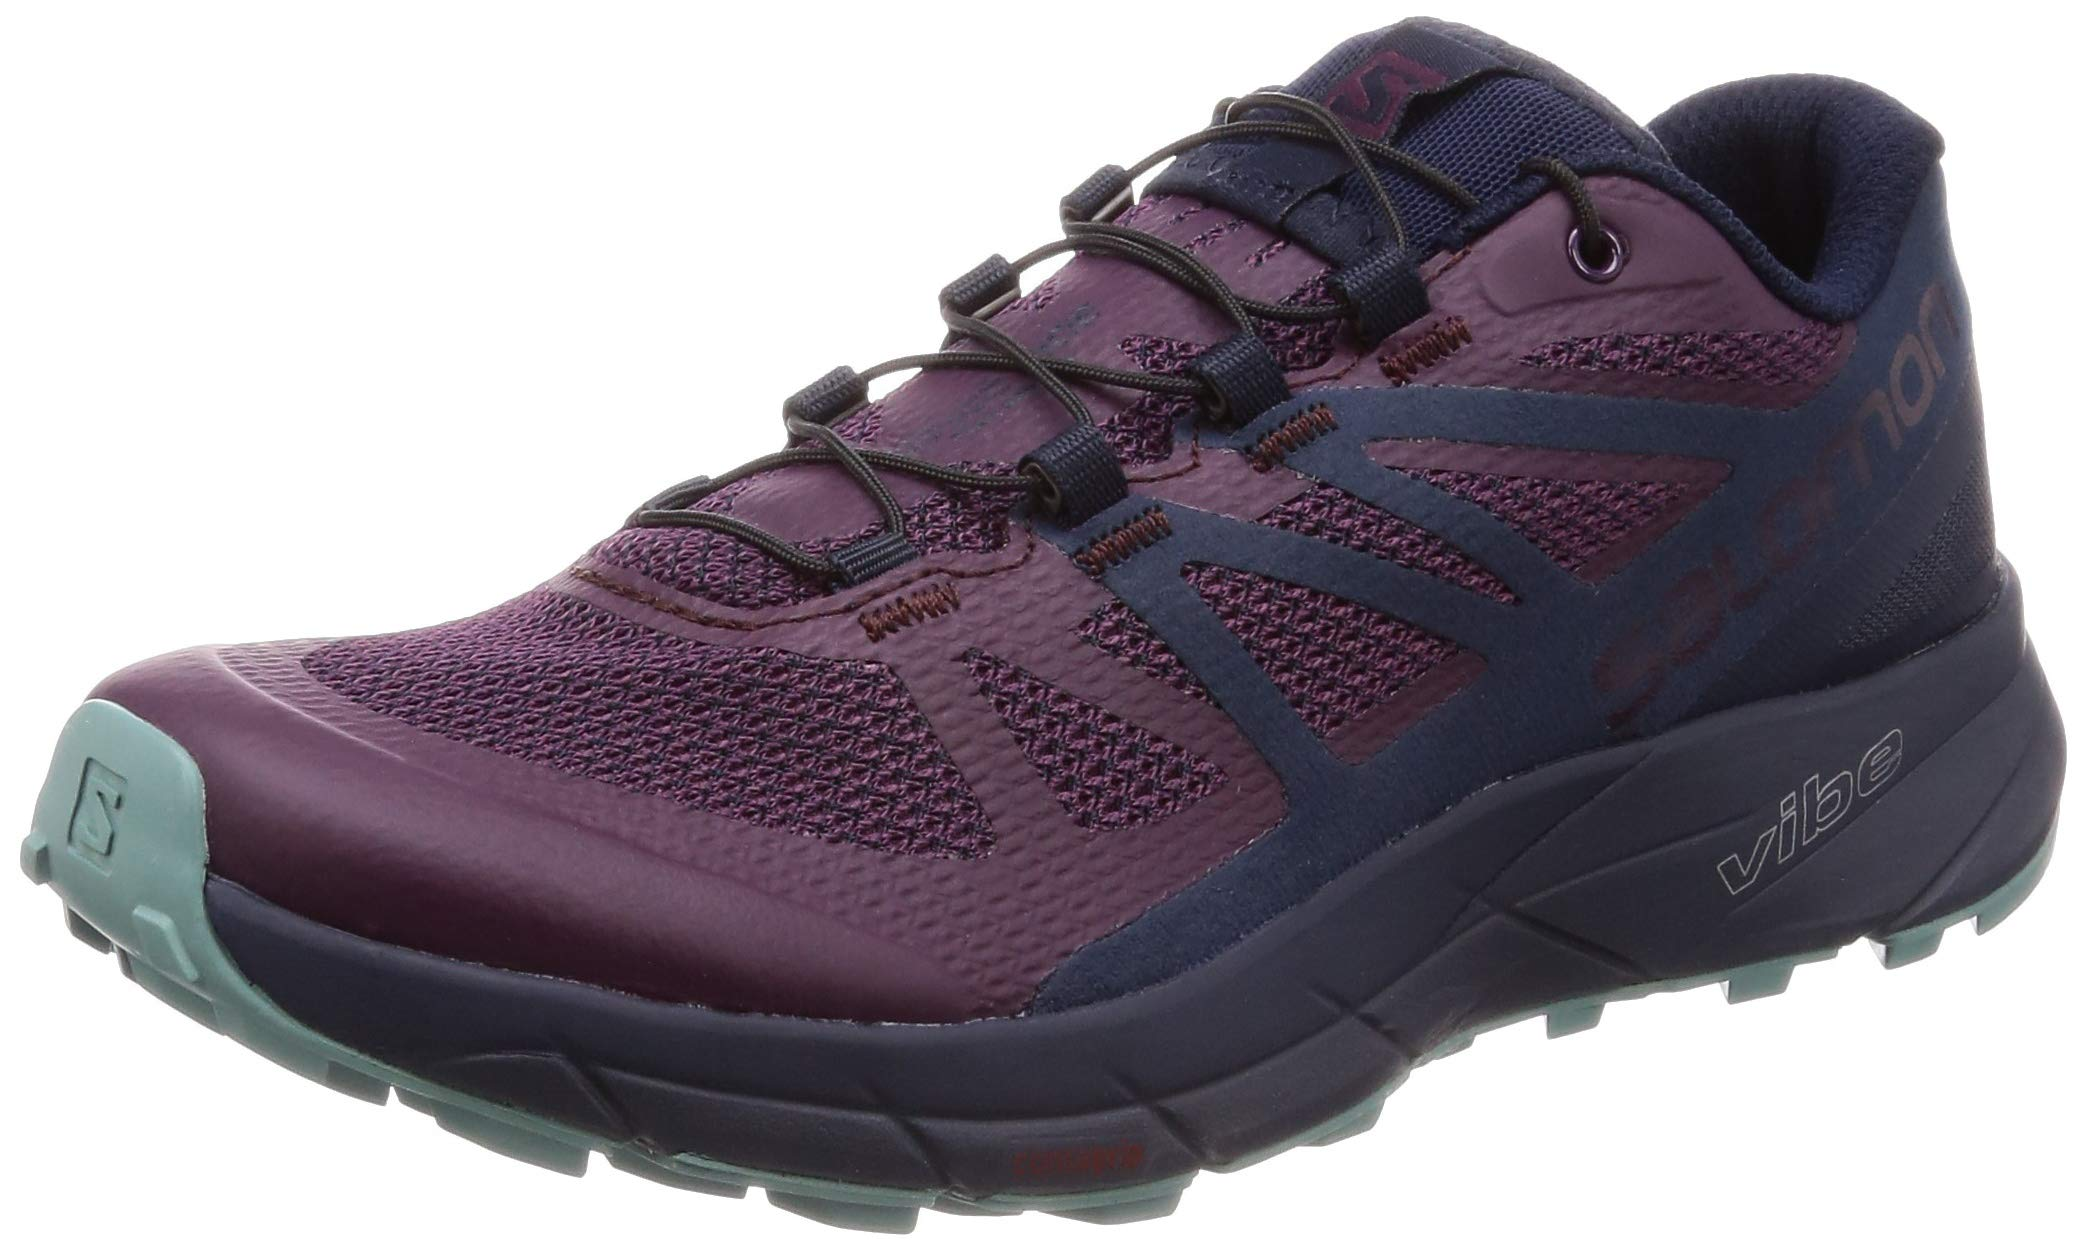 Salomon Sense Ride Running Shoe - Women's Potent Purple/Graphite/Navy Blazer 6 by Salomon (Image #1)